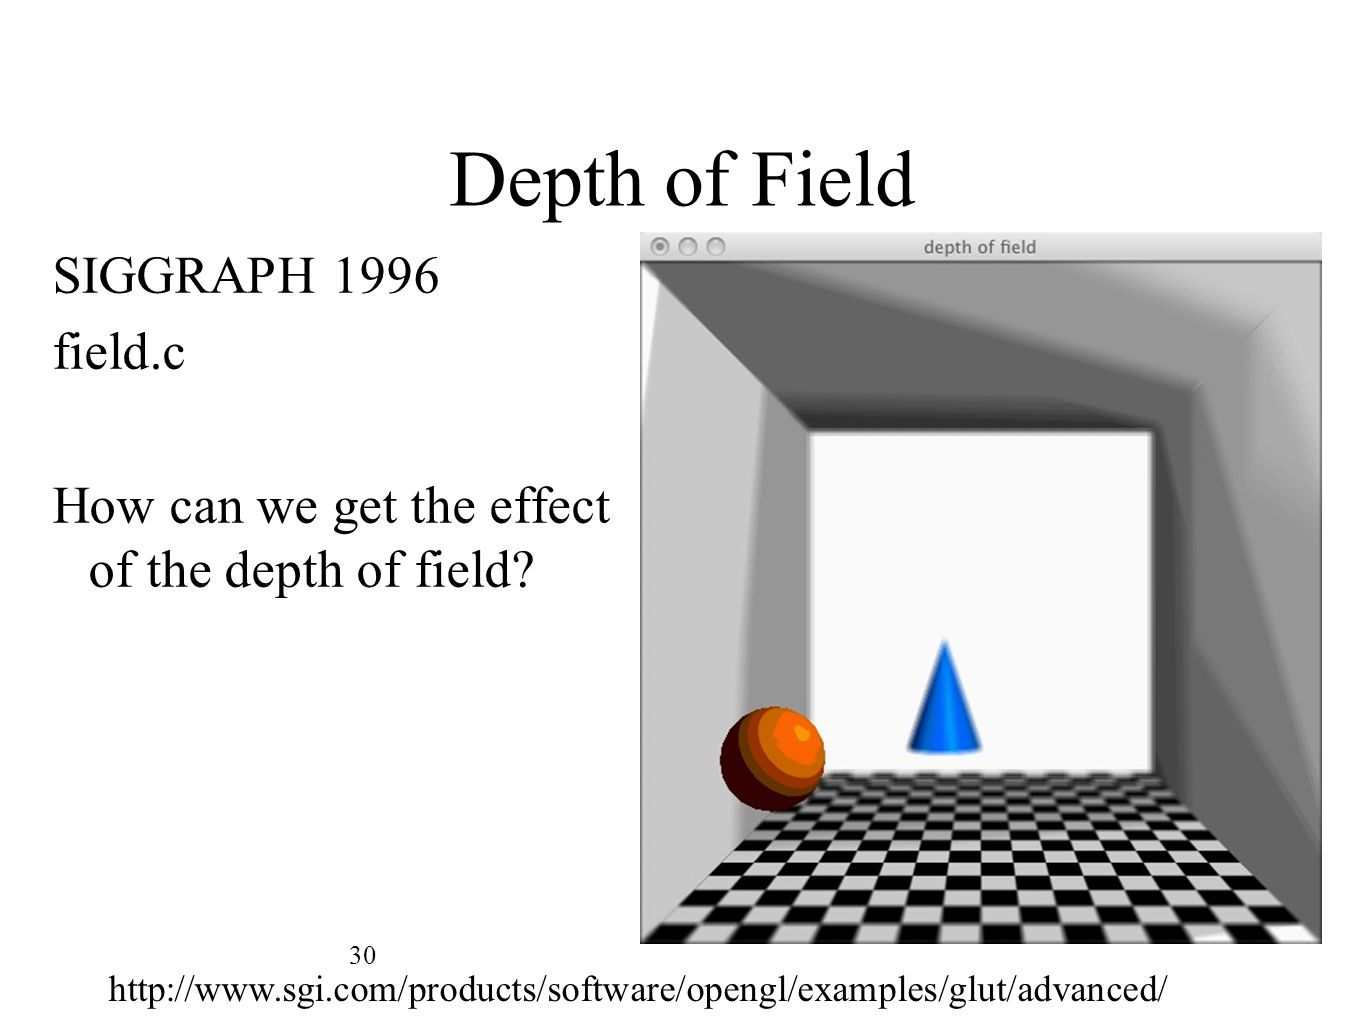 Depth of Field SIGGRAPH 1996 field.c How can we get the effect of the depth of field